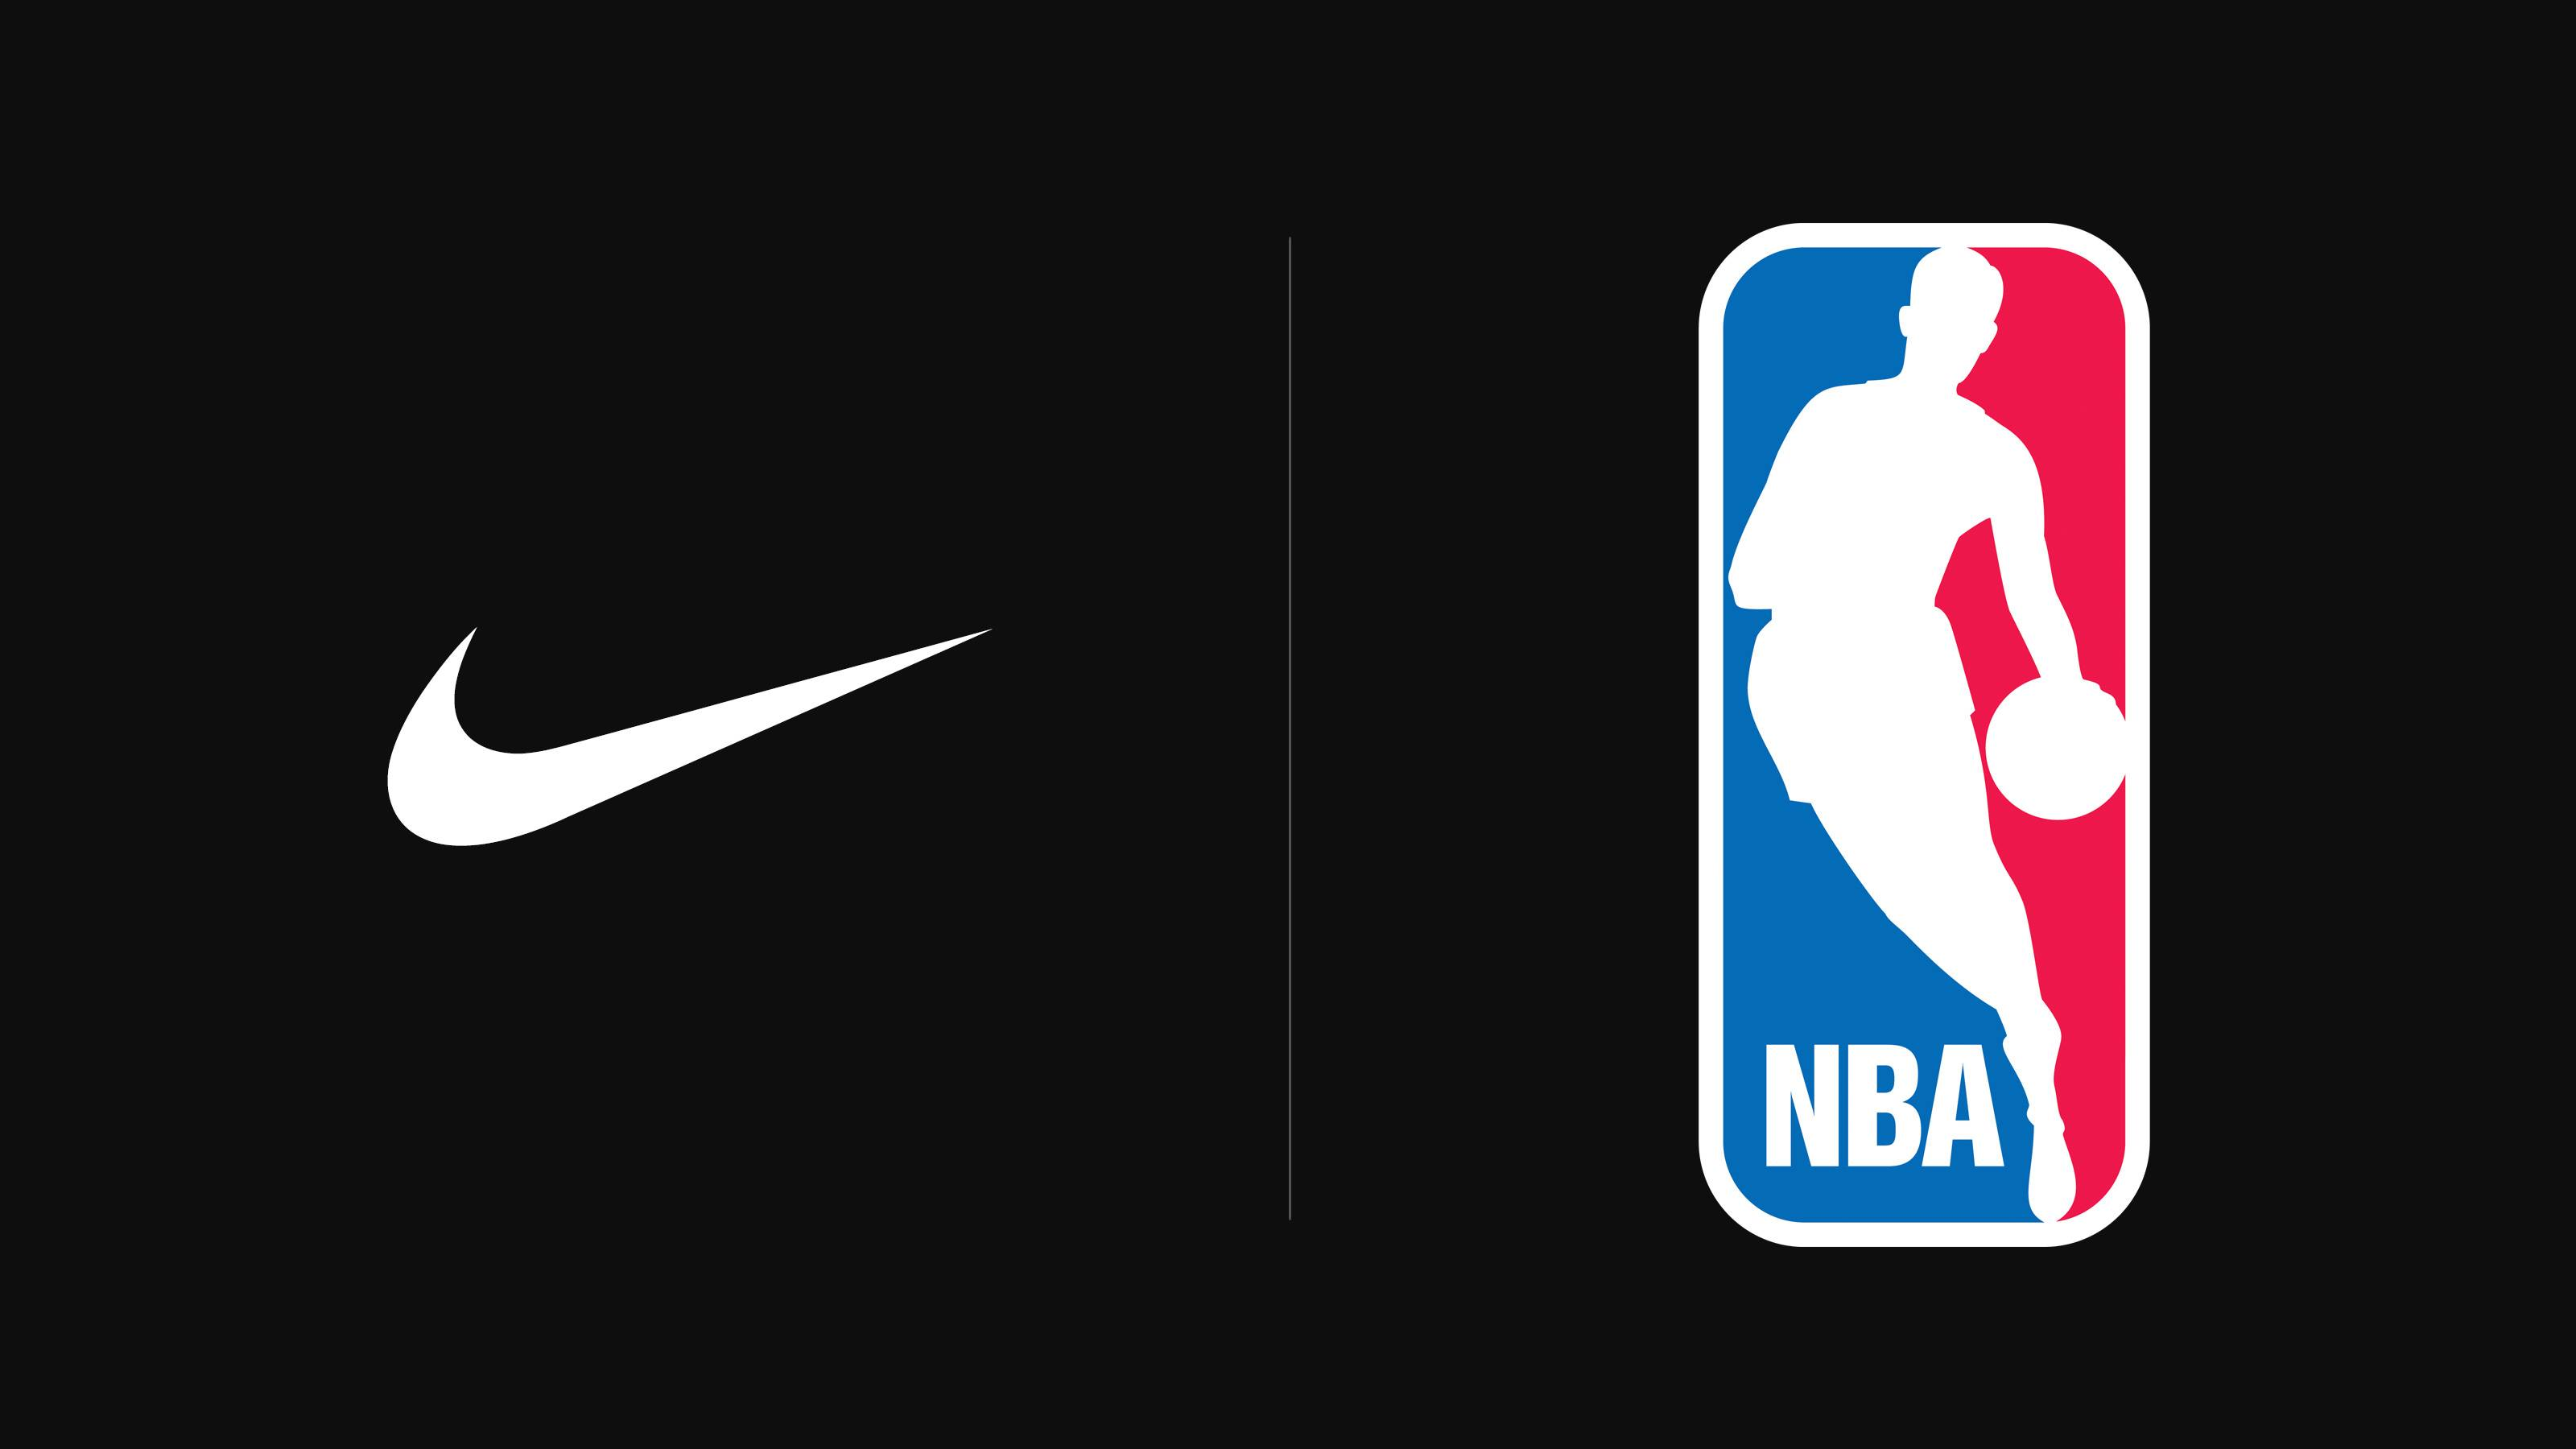 Nike-NBA-logo_original